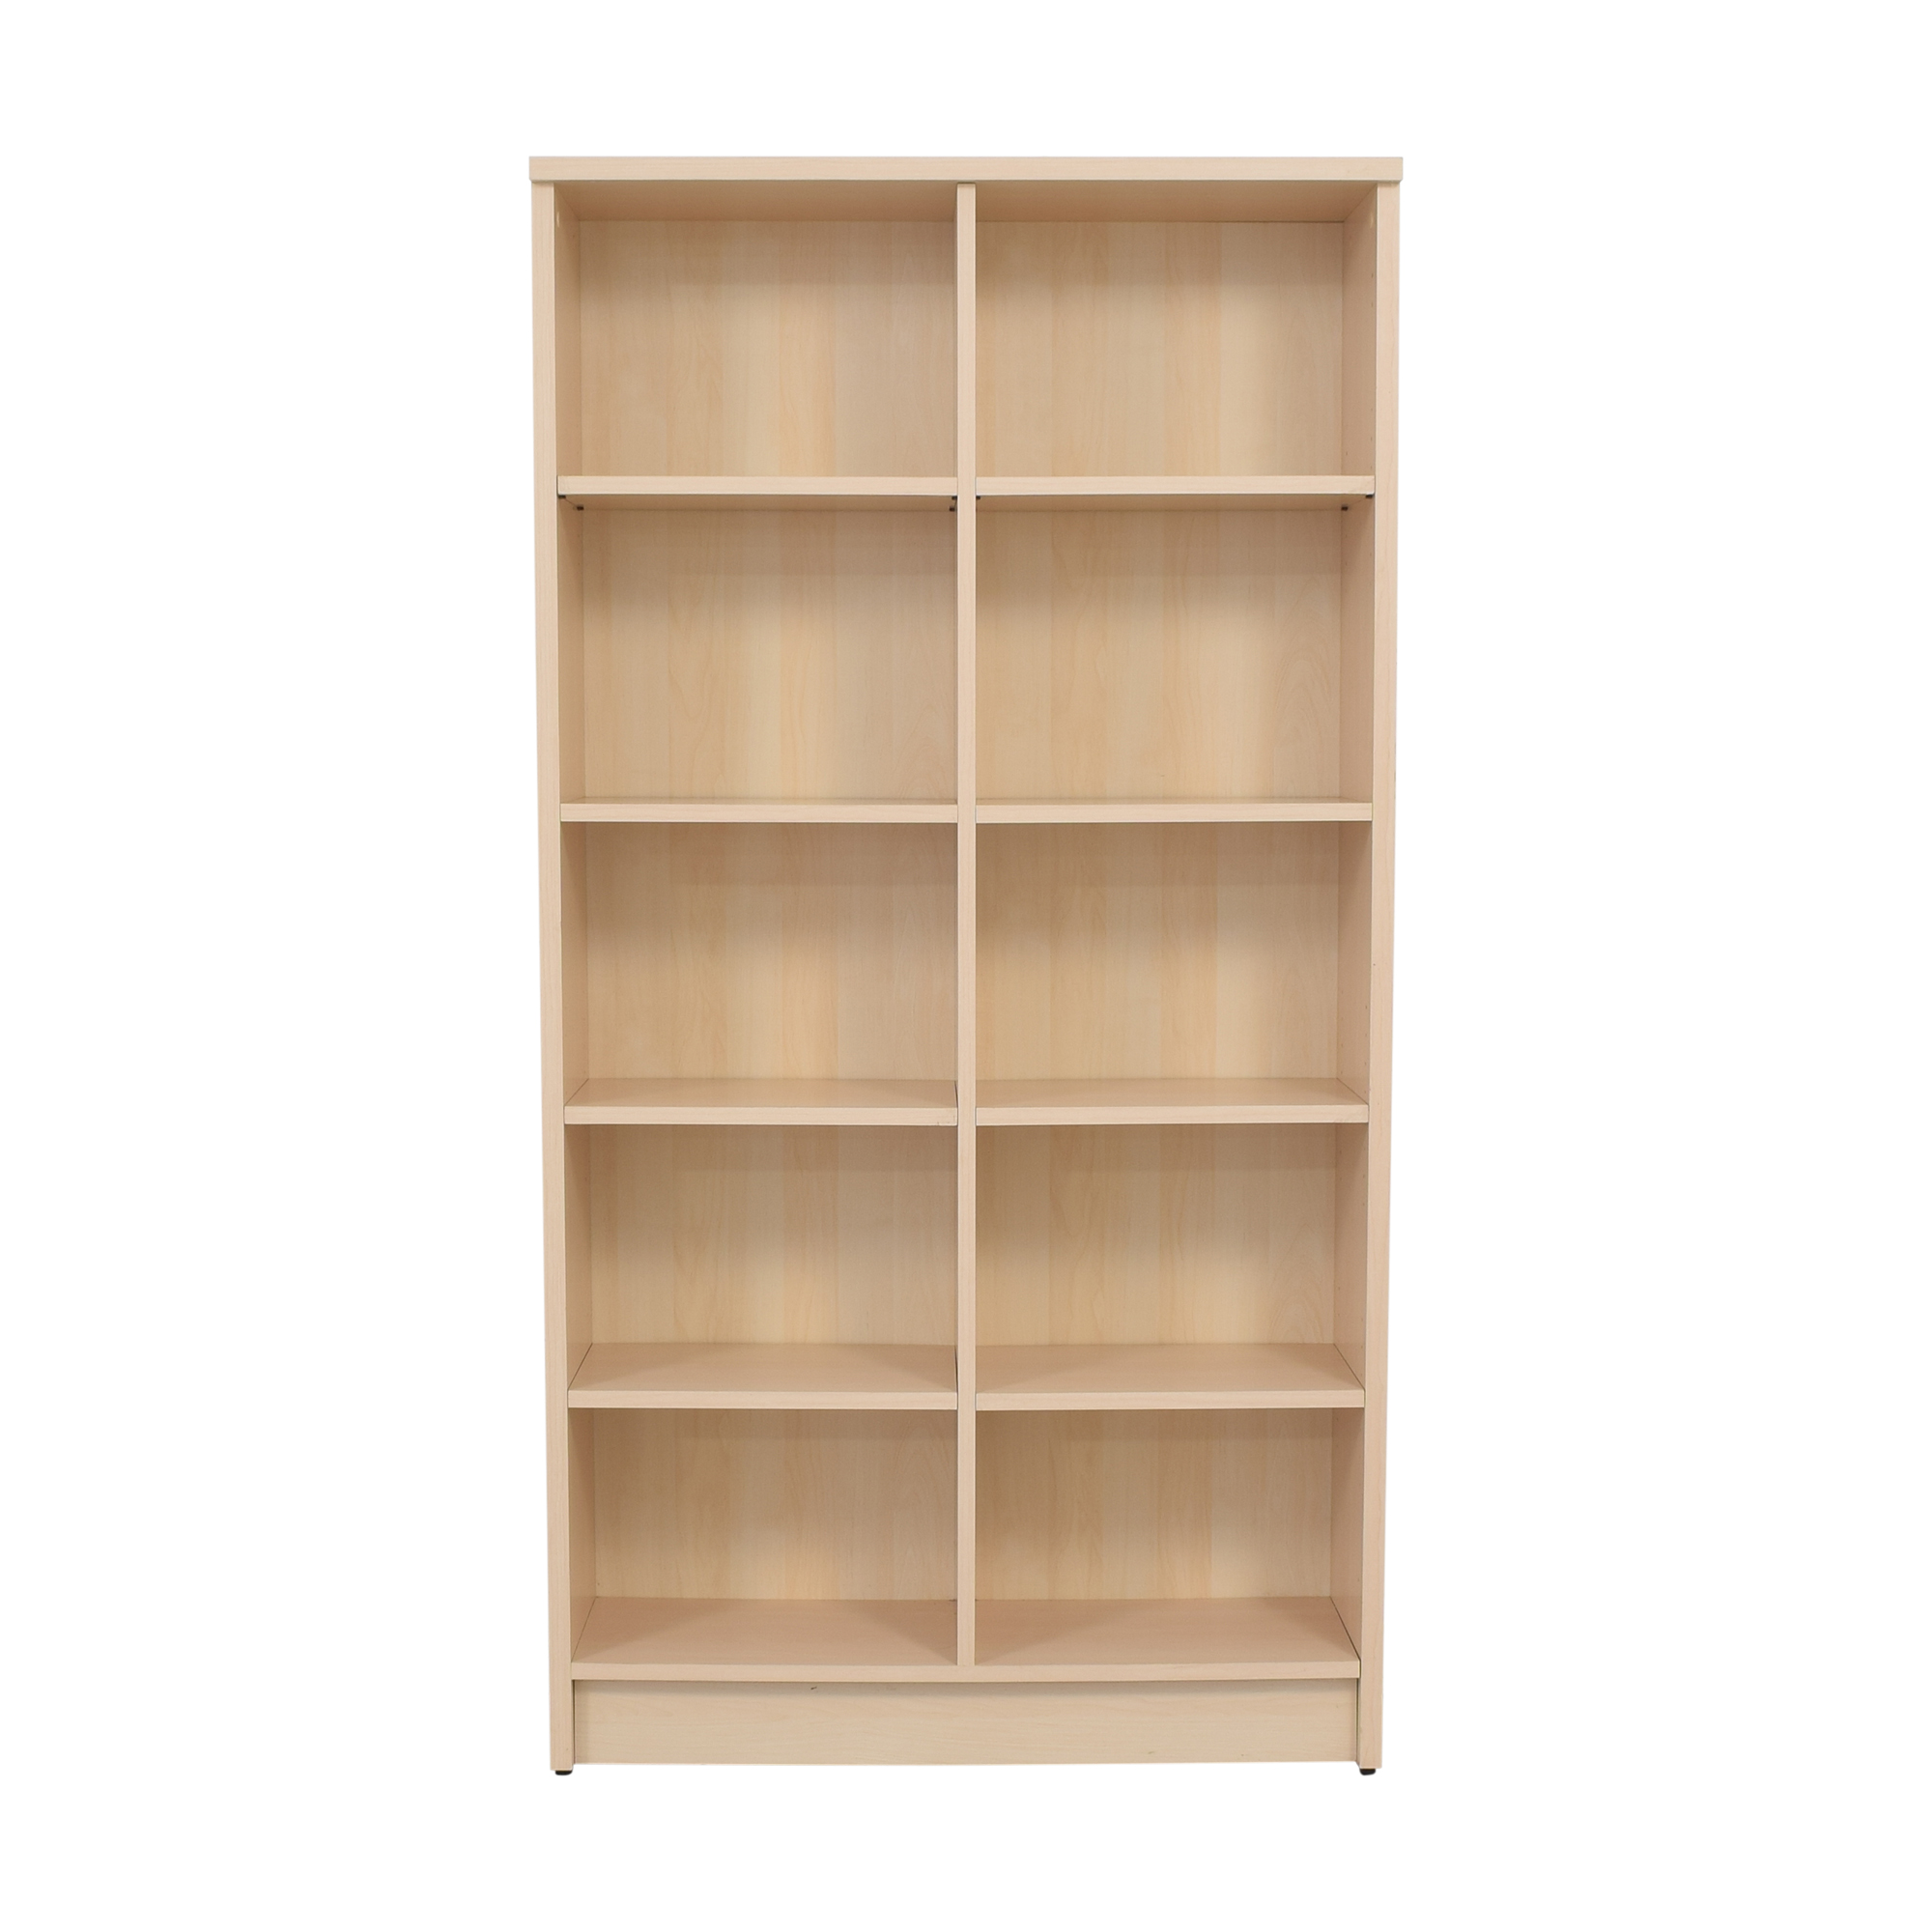 Danish Made Bookcase used